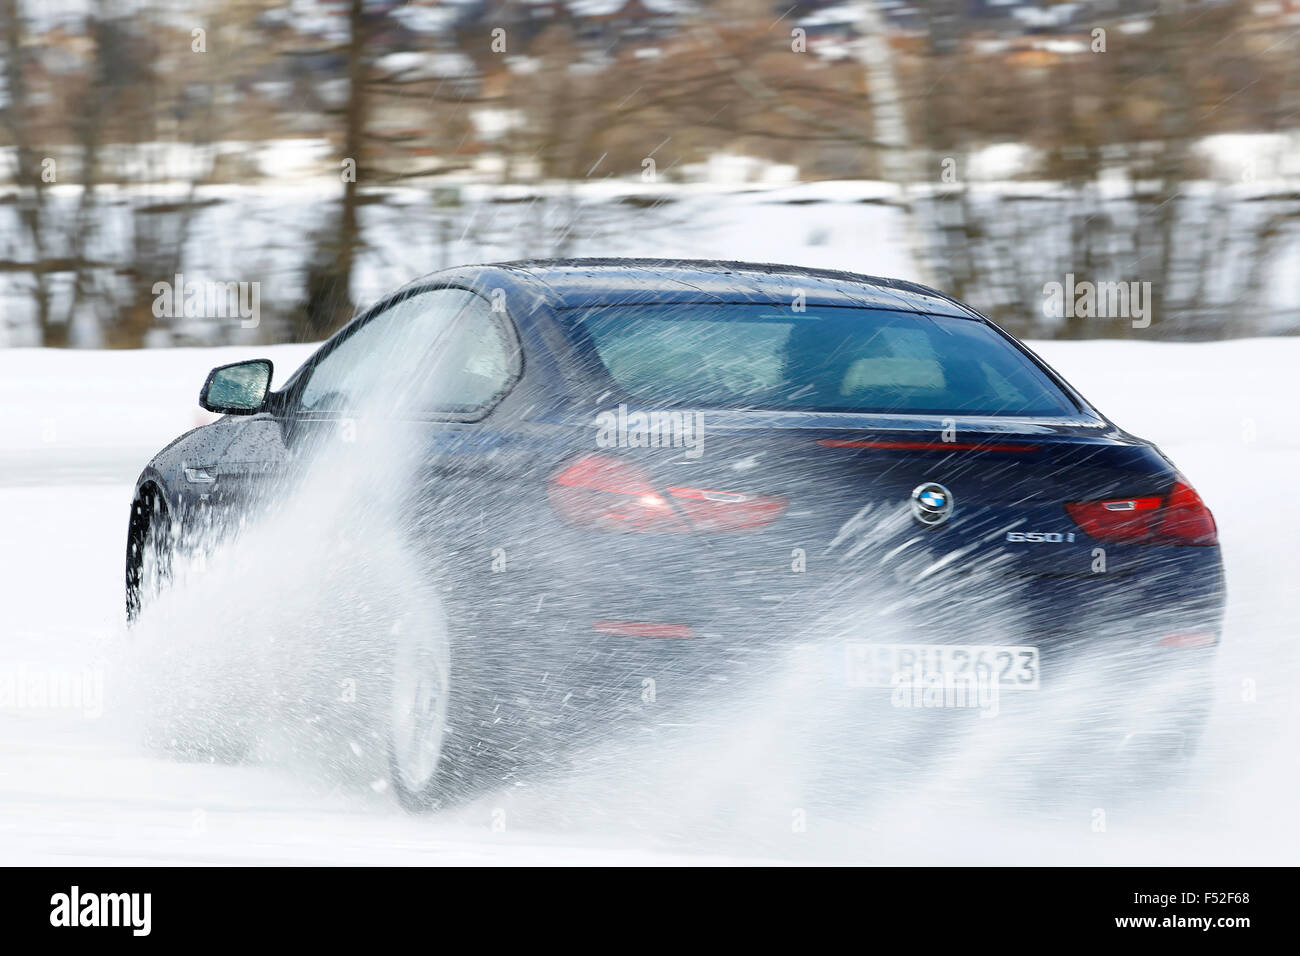 Car bmw 650 i four wheel year of construction in 2012 on ice and snow in drift